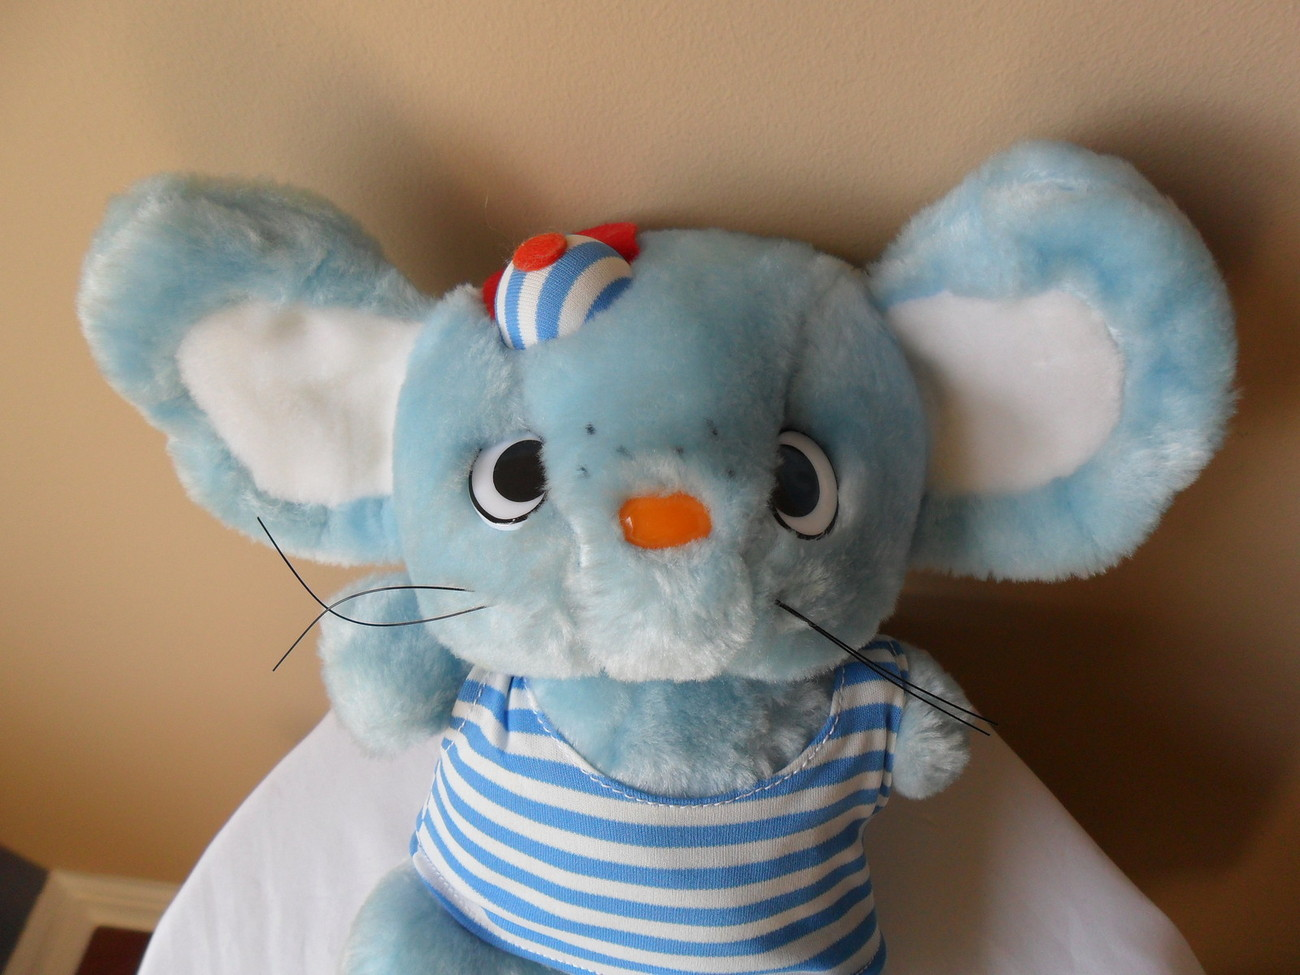 "SANRIO Mouse Plush 1986"" Vintage 11"" Tall Blue Striped w/cap Hard To Find!!"